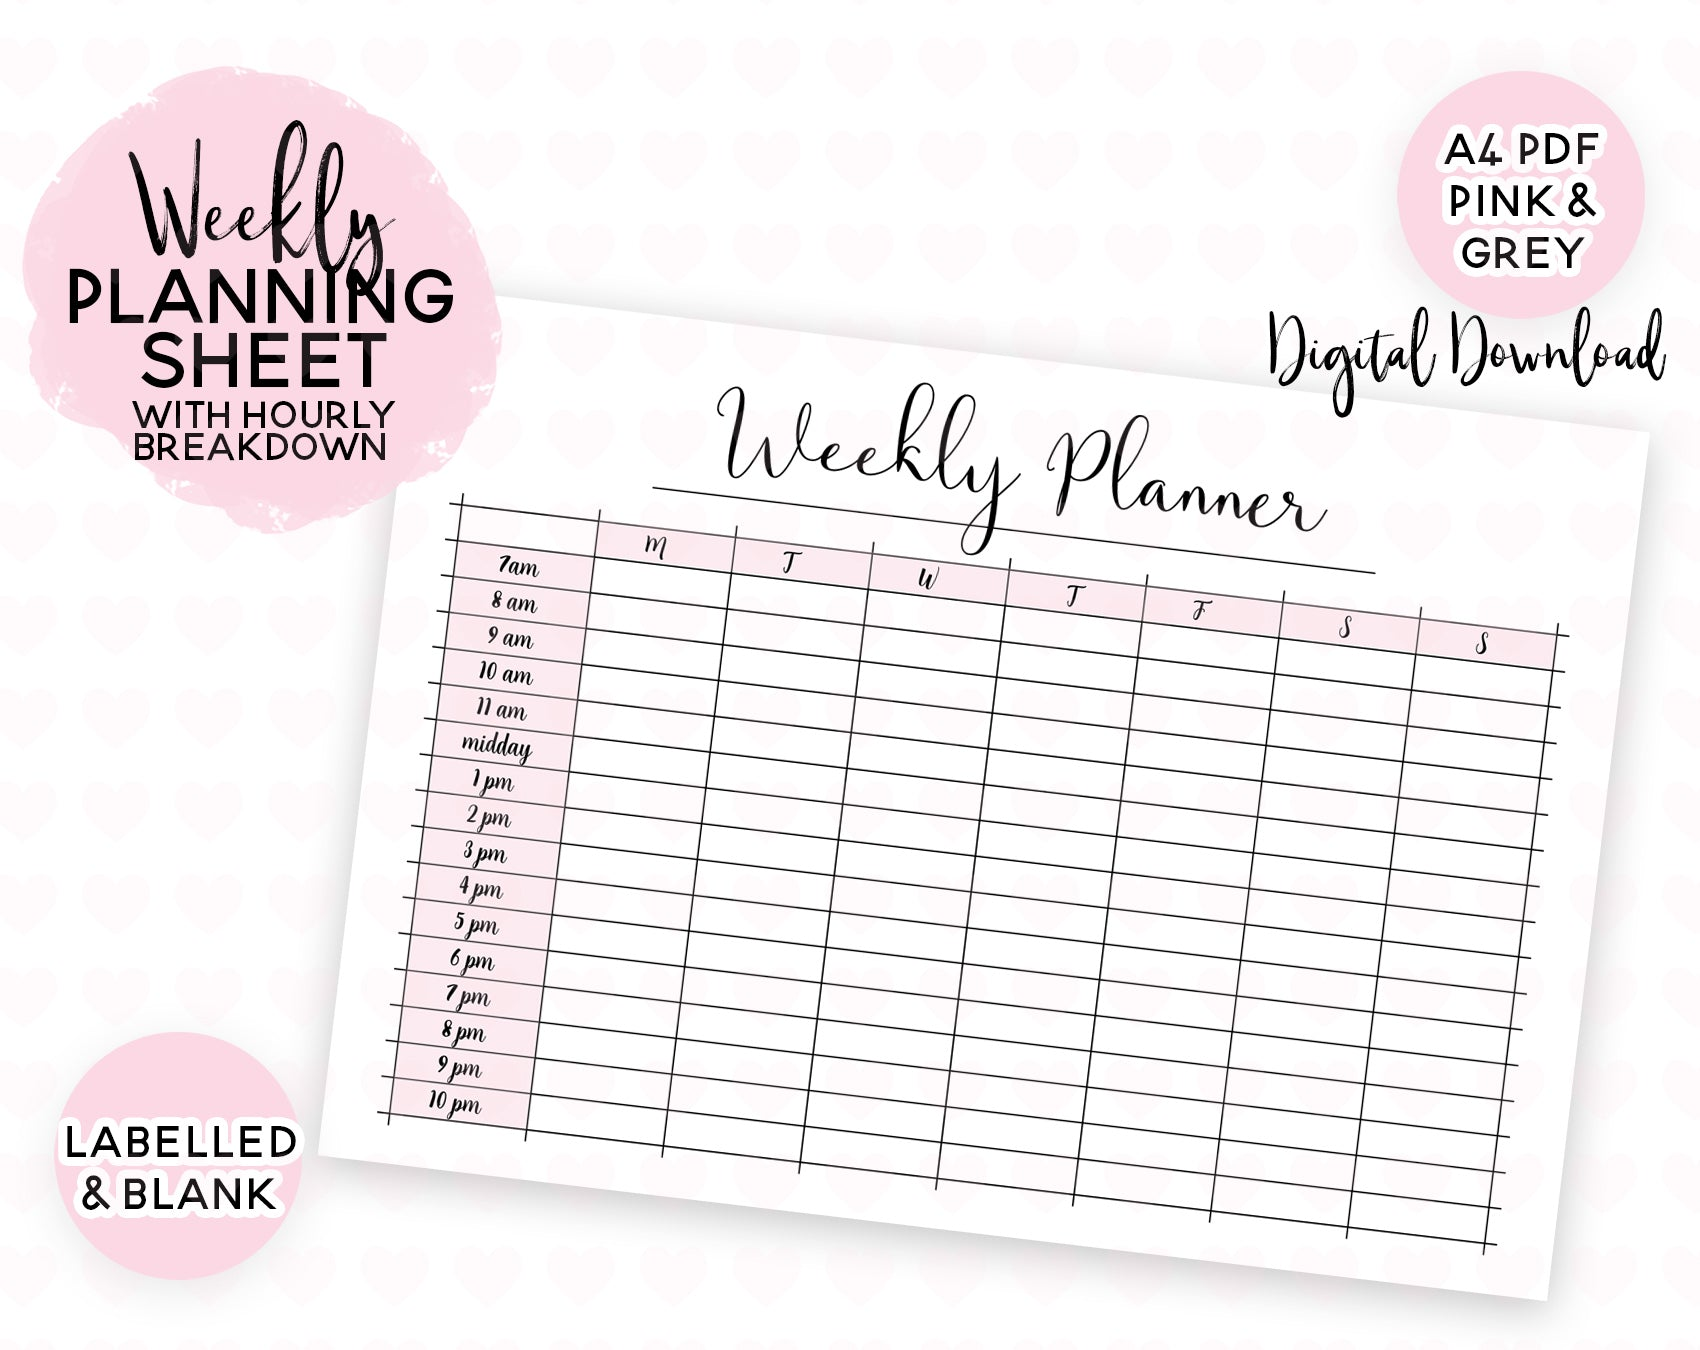 image regarding Cute Hourly Planner named Weekly Designing Sheet With Hourly Breakdown - Adorable Prints